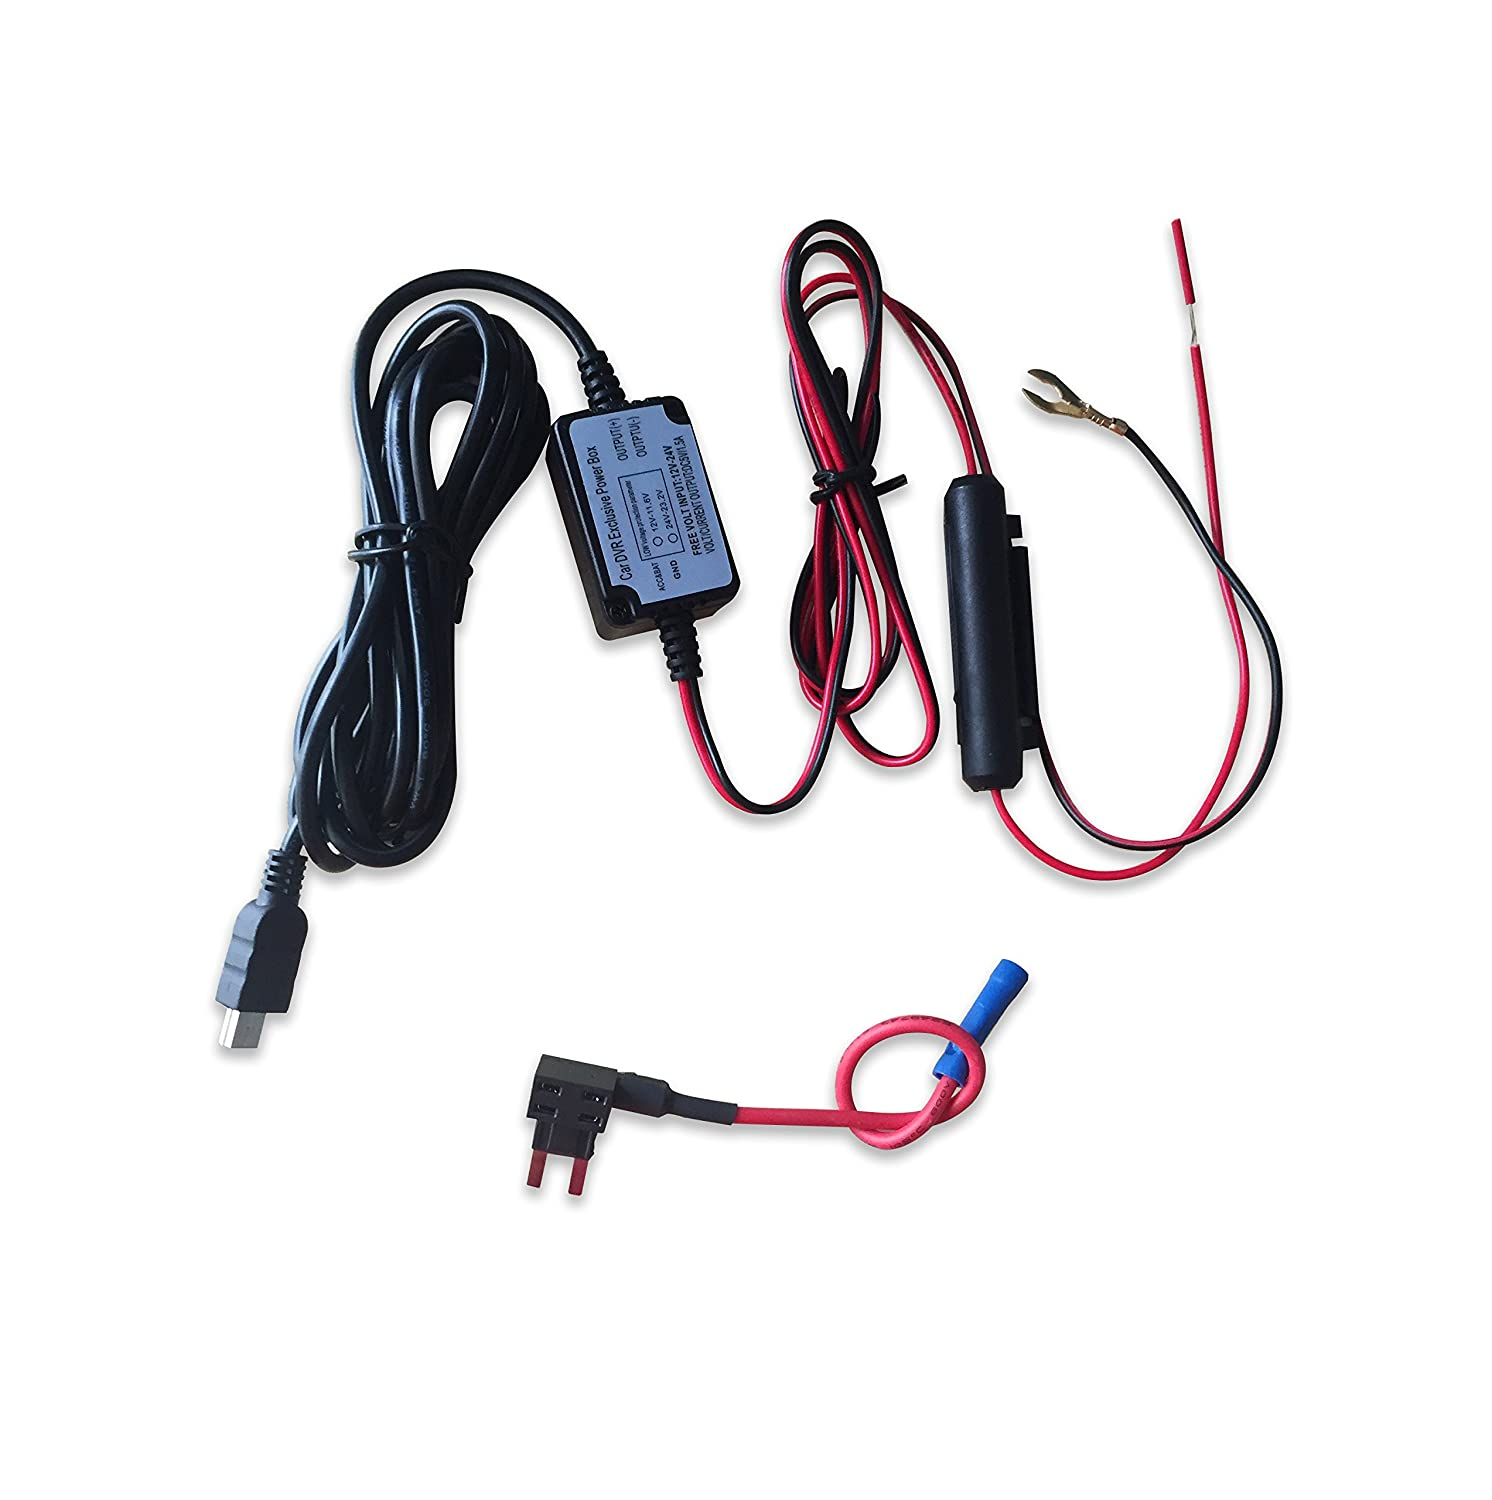 81vasrBJwWL._SL1500_ amazon com wocst car camera hard wire kit mini usb dash cam 10 House Fuse Box Diagram at crackthecode.co